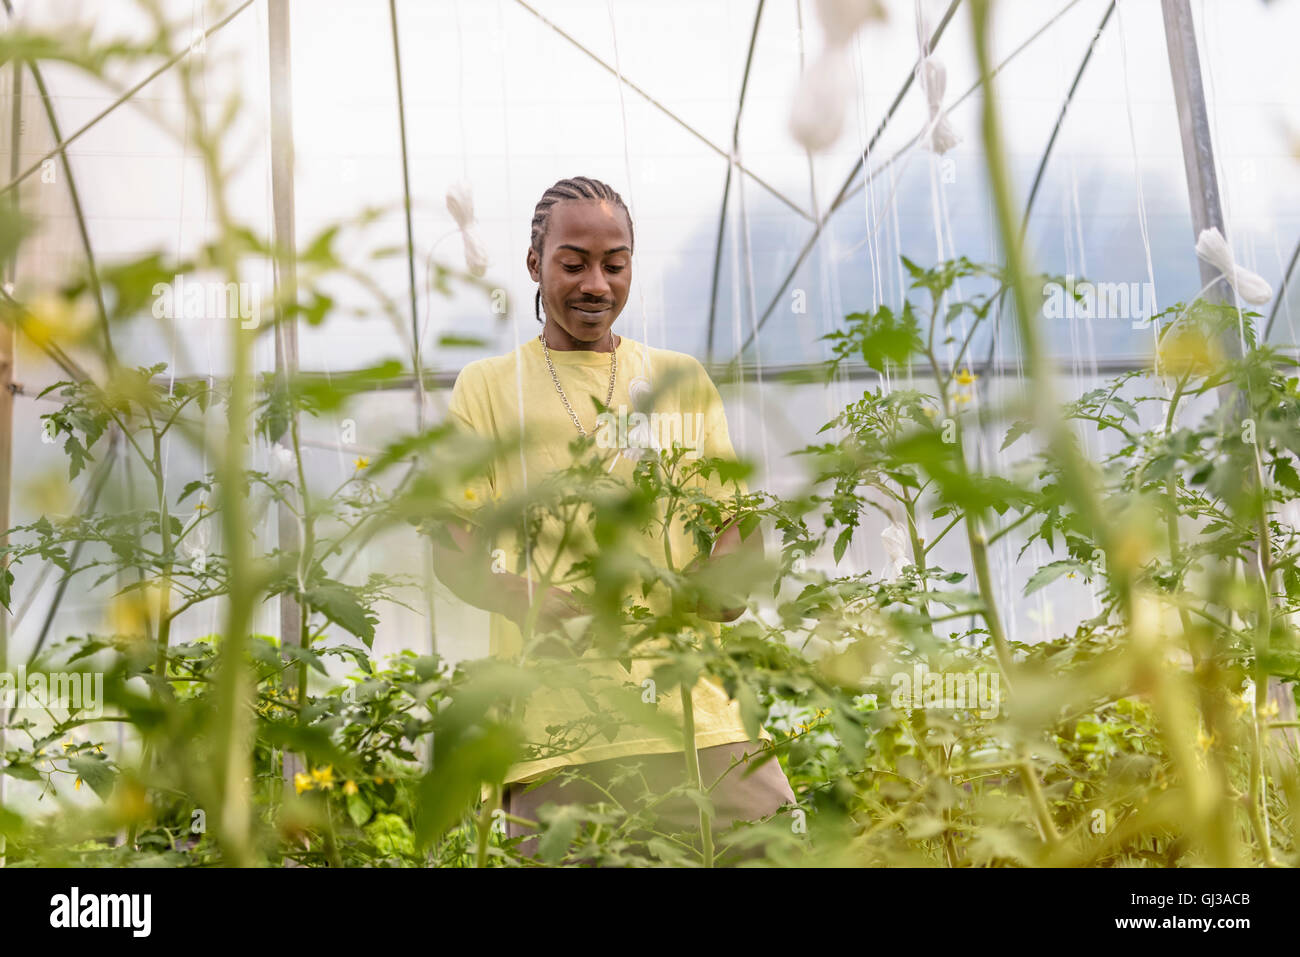 Worker removing tomato plants side shoots in Hydroponic farm in Nevis, West Indies - Stock Image